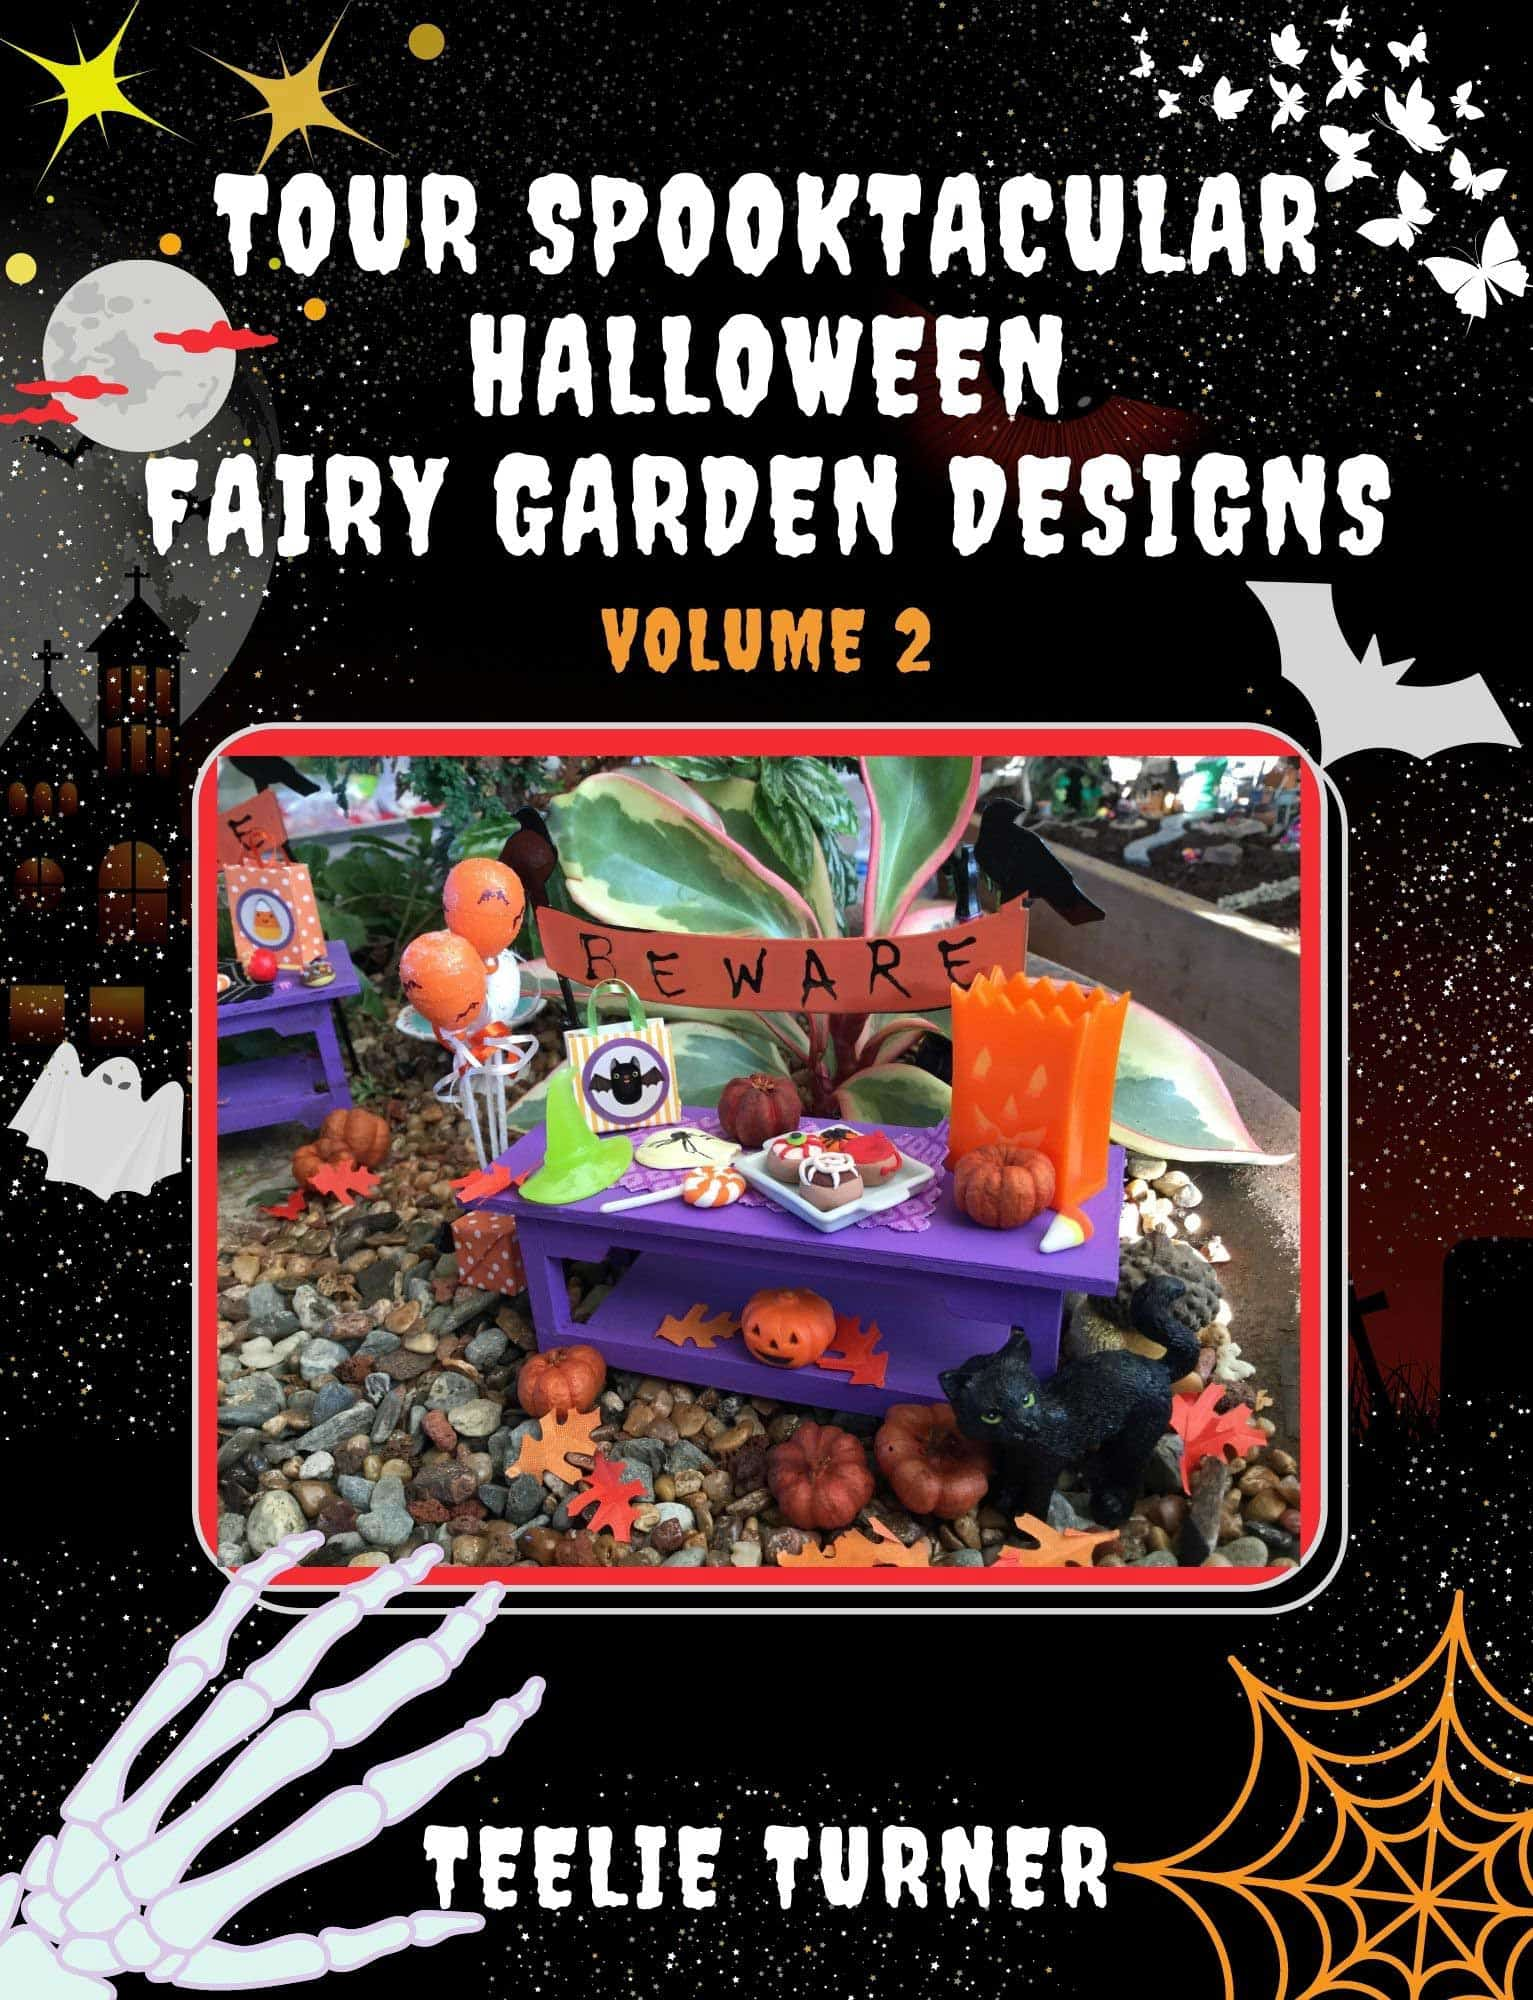 Kindle Of Vol.2 Halloween Etsy Photo Book 8.625x11.25